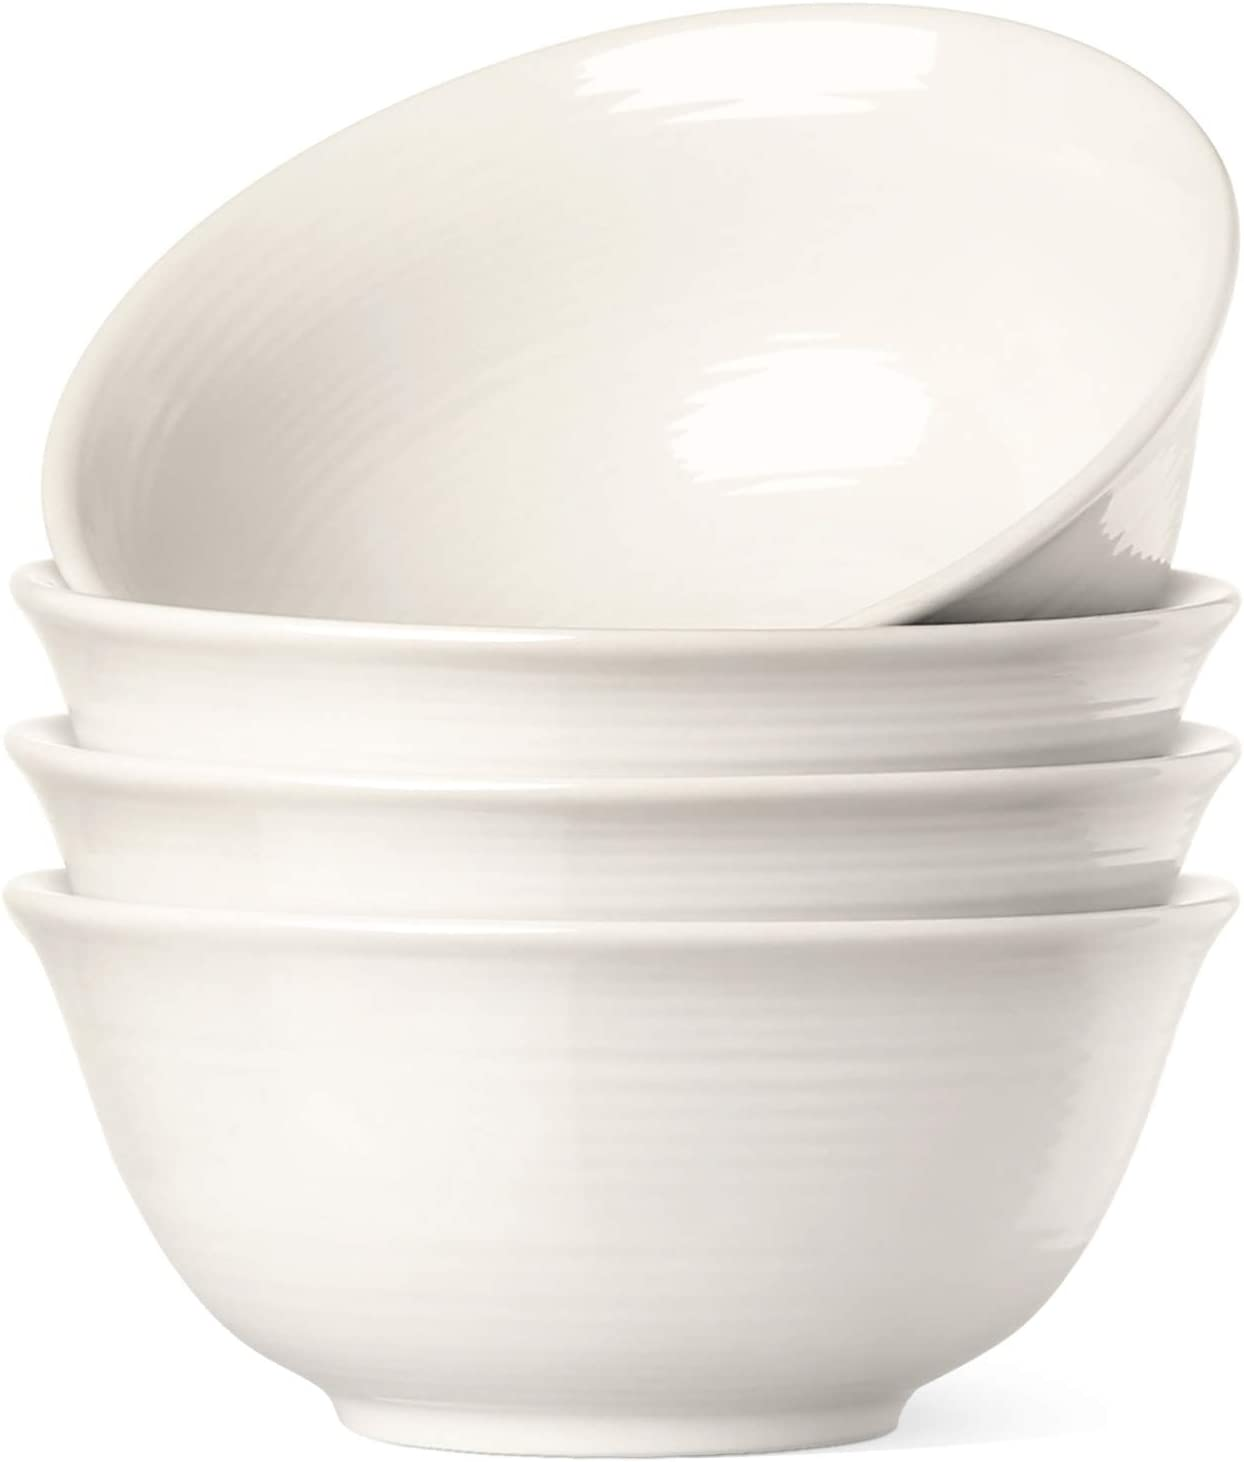 Le Tauci 4 Piece Cereal Soup Bowls Set, 18 Ounce White